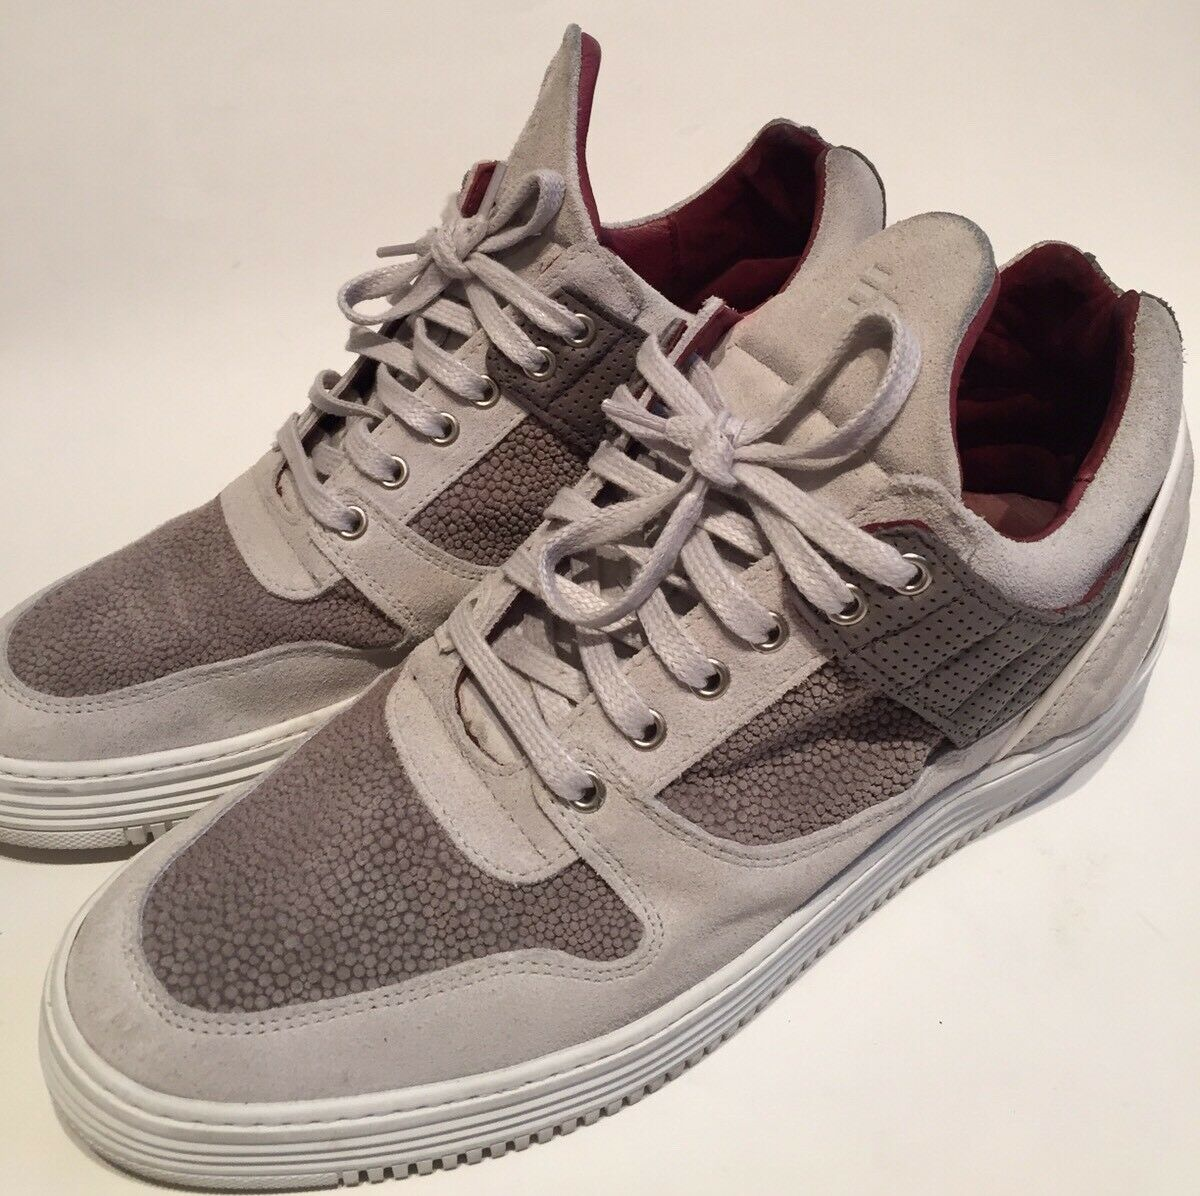 Filling Pieces Low Top Perforated Perforated Perforated Grey Suede Maroon Leather EU43 US10 3c81cc